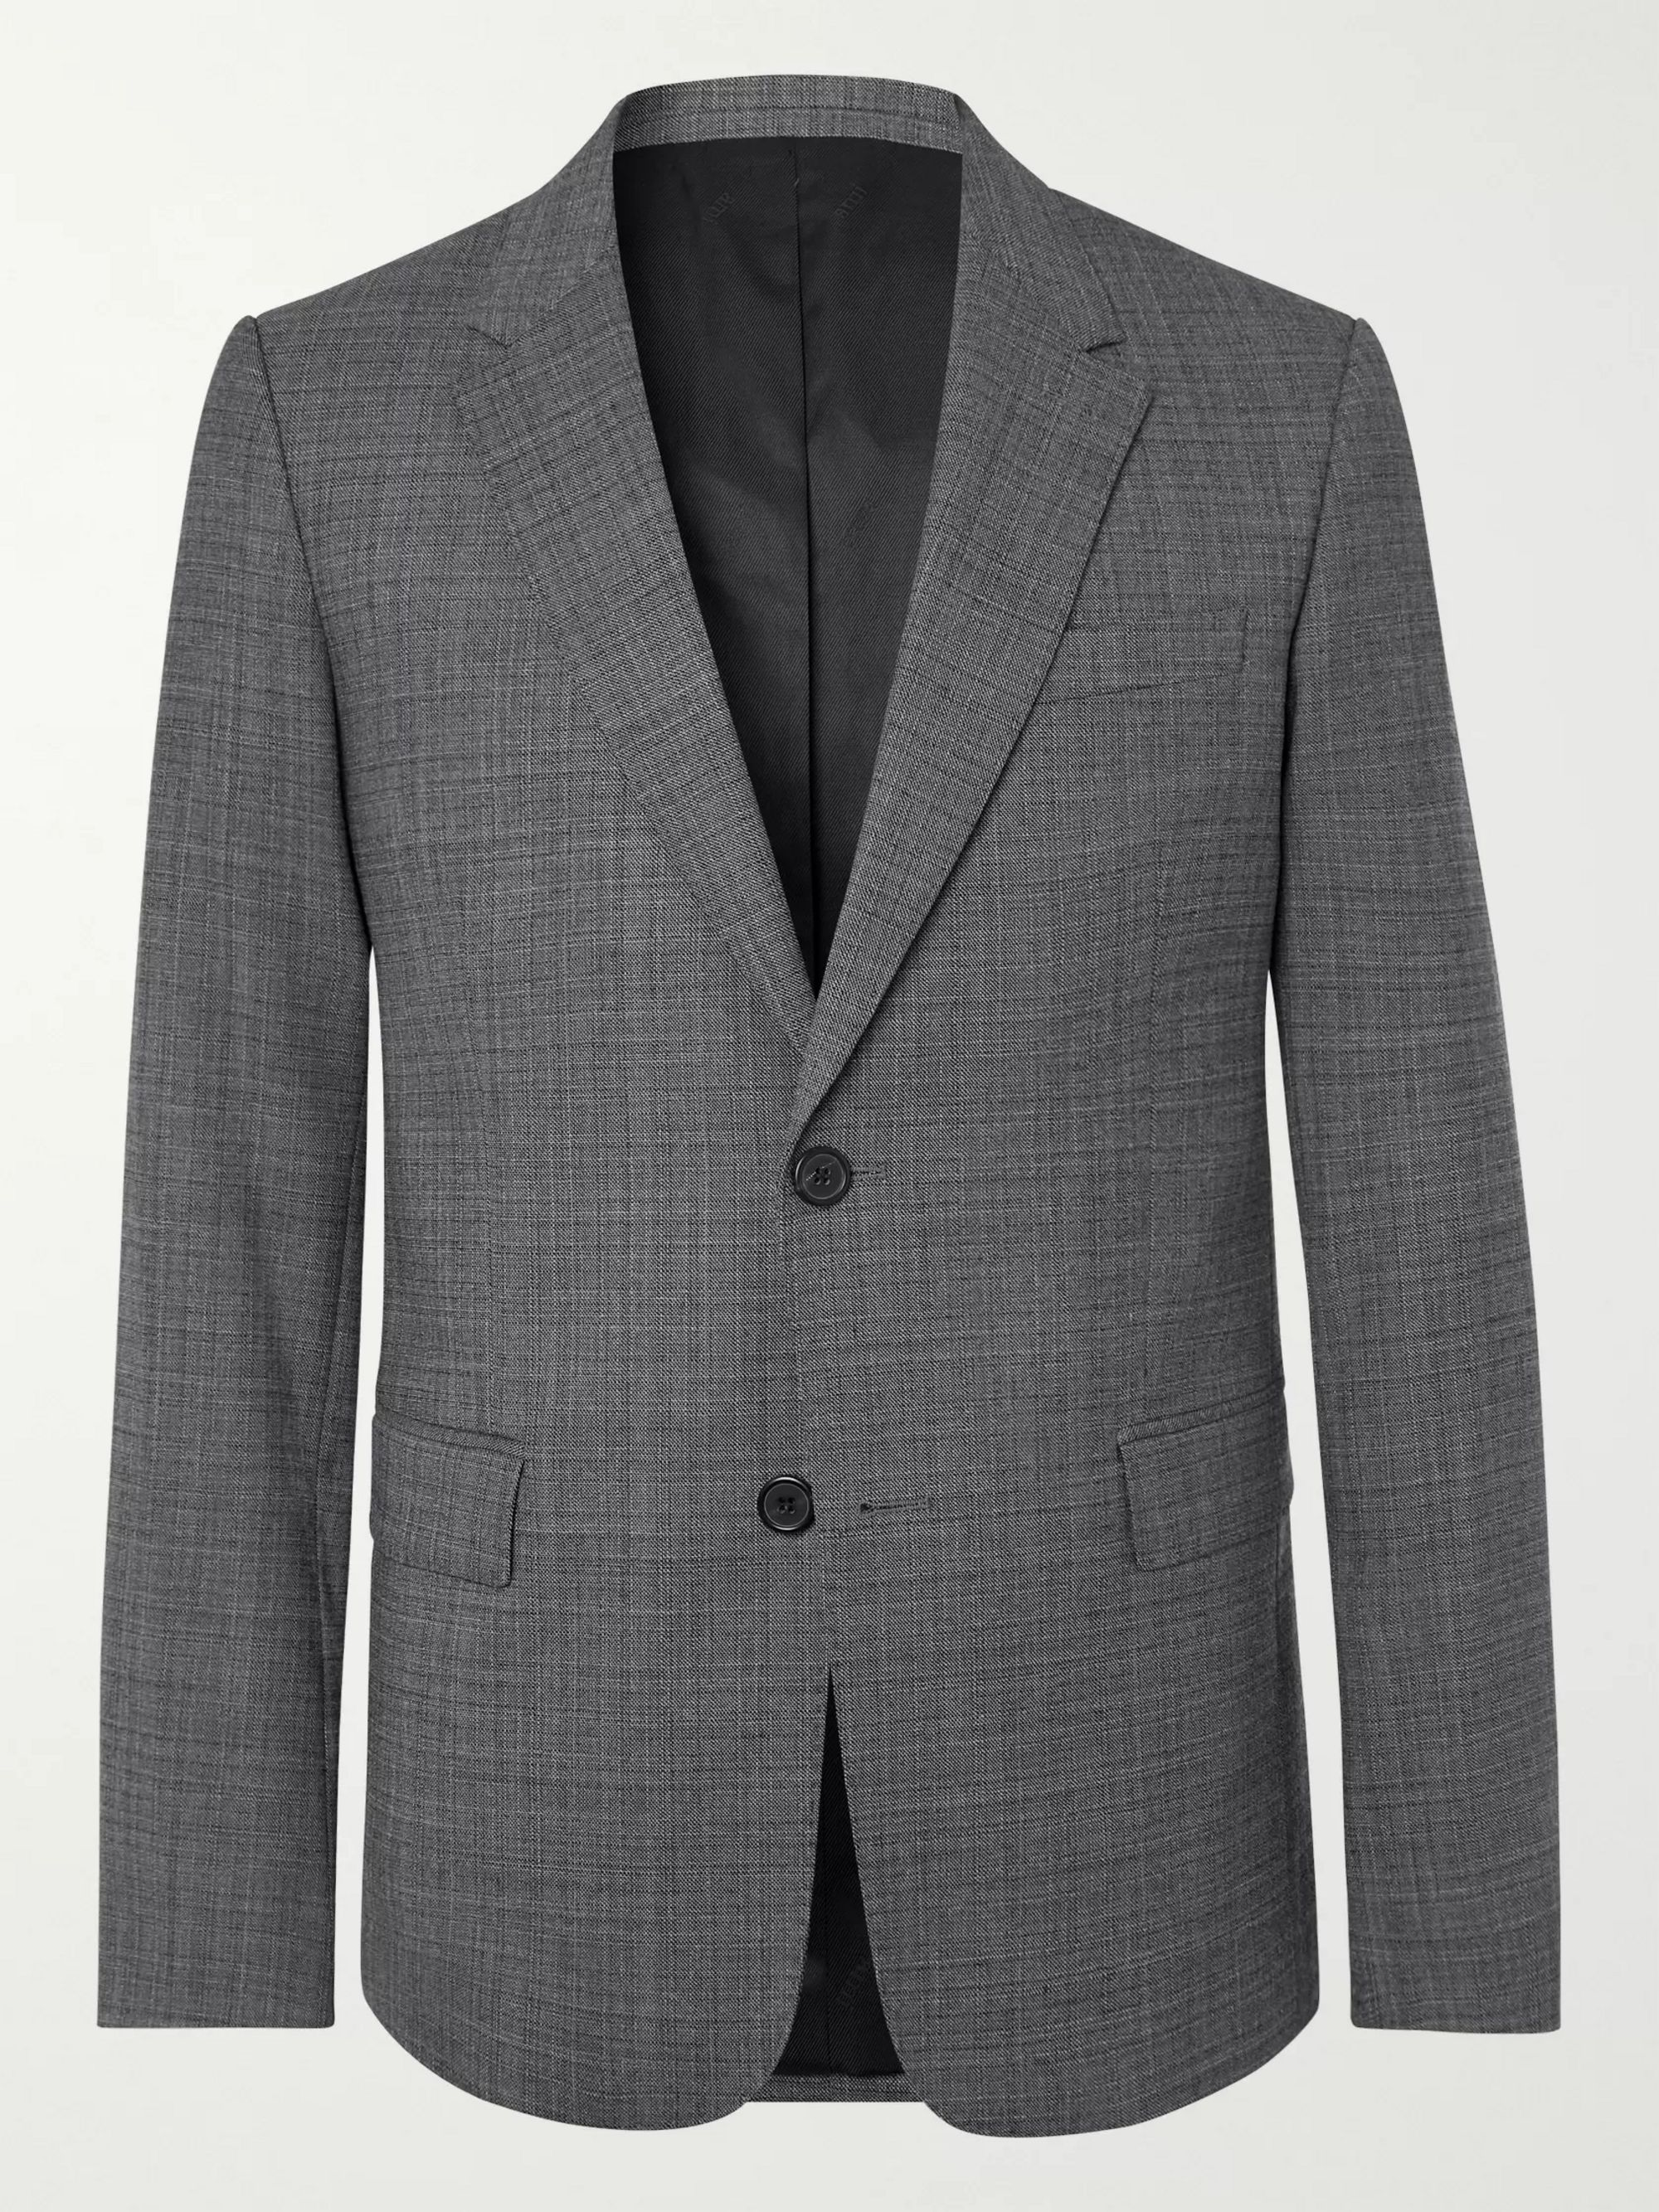 AMI Grey Tweed Suit Jacket